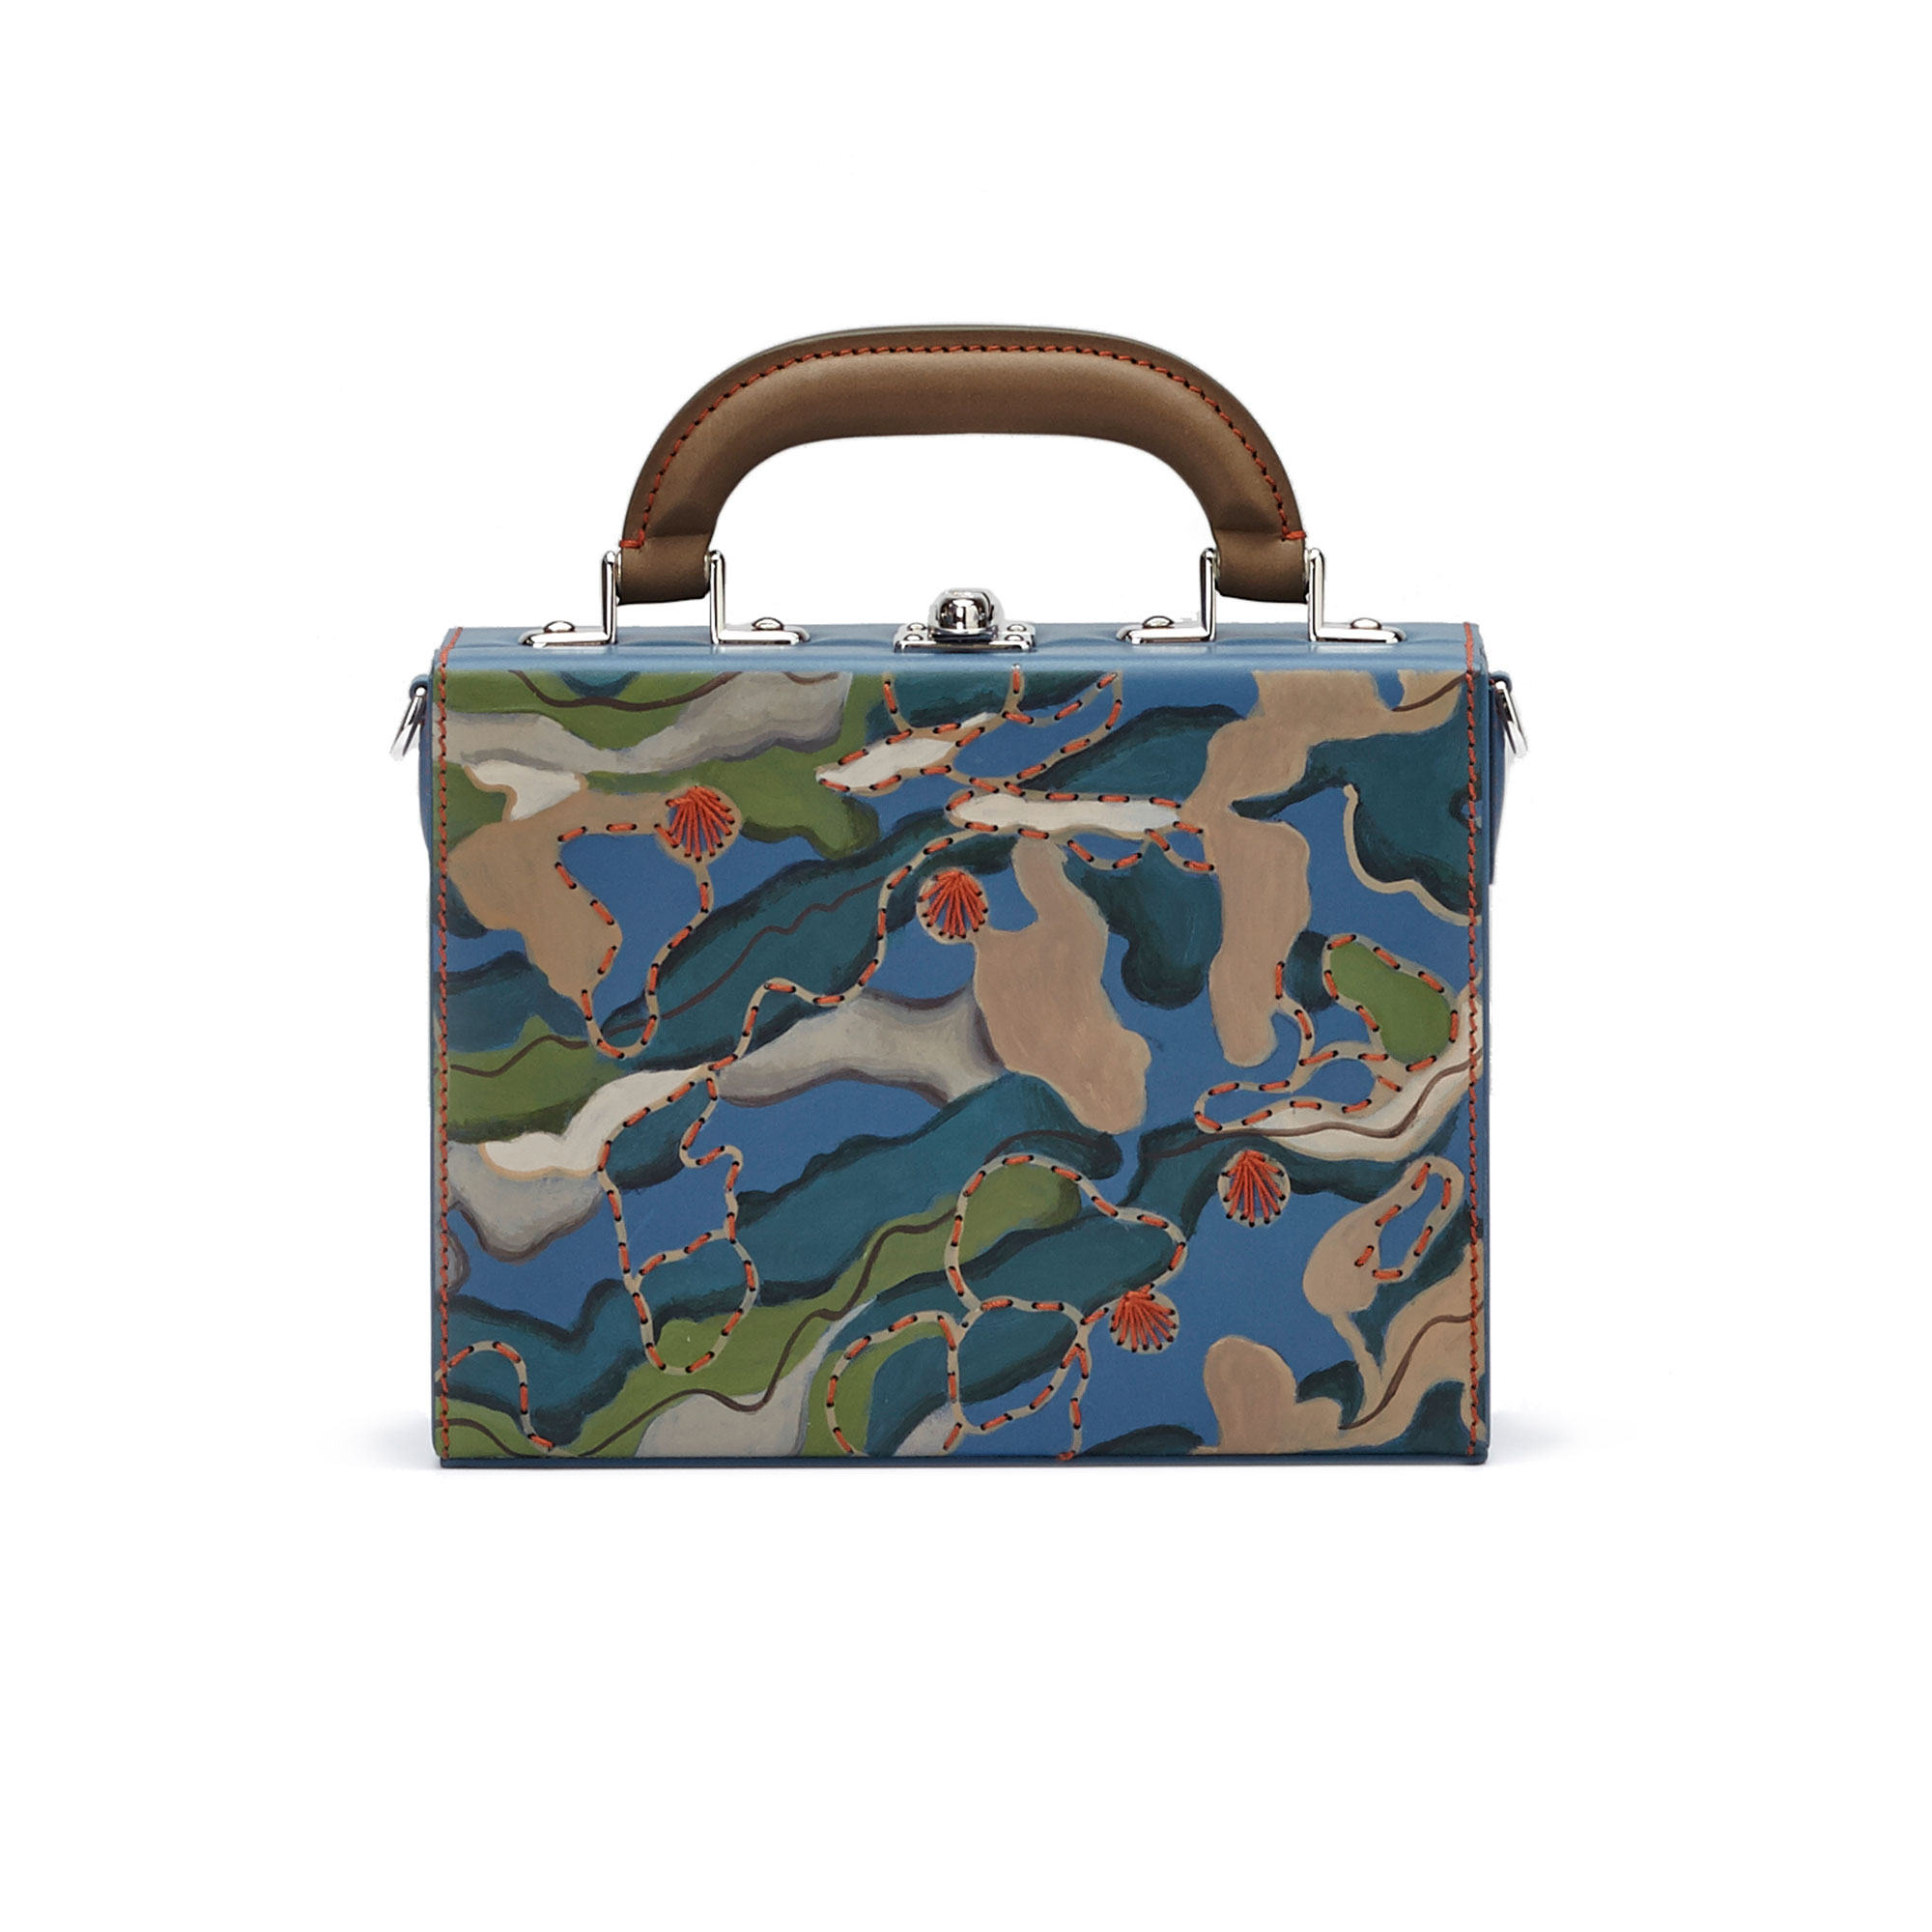 The hand-painted camouflage effect french calf Mini Squared Bertoncina bag by Bertoni 1949 01